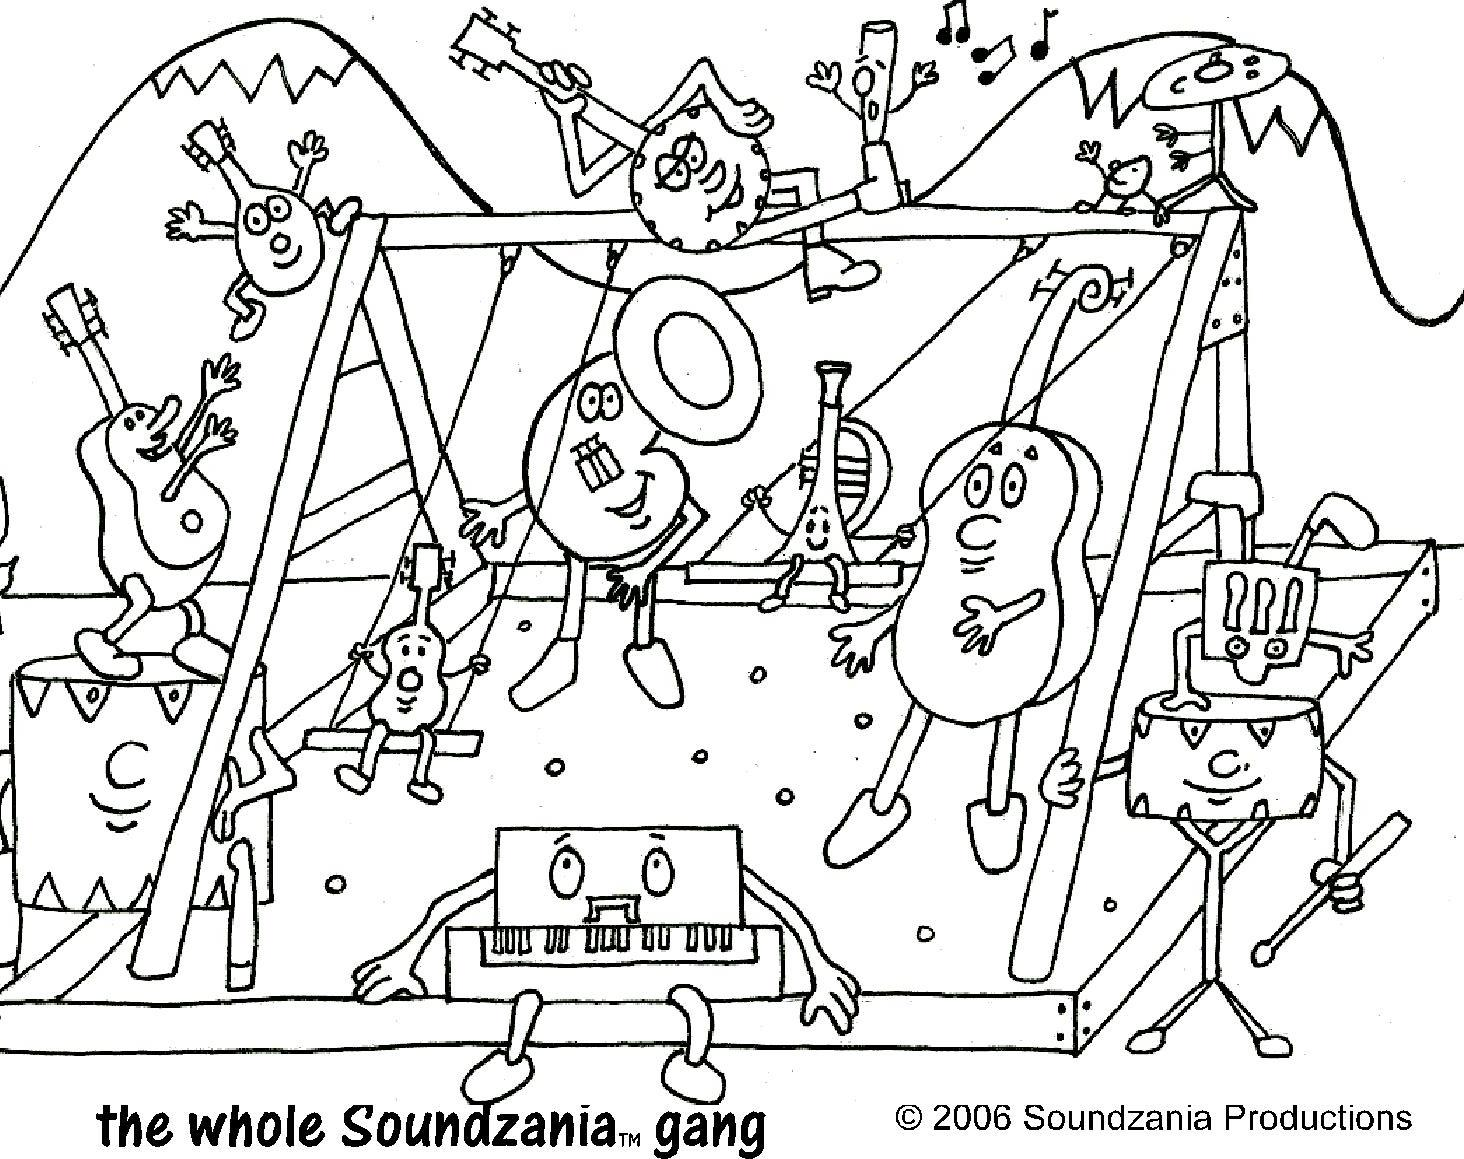 Soundzania Coloring Pages Coloring Pages For Elementary School